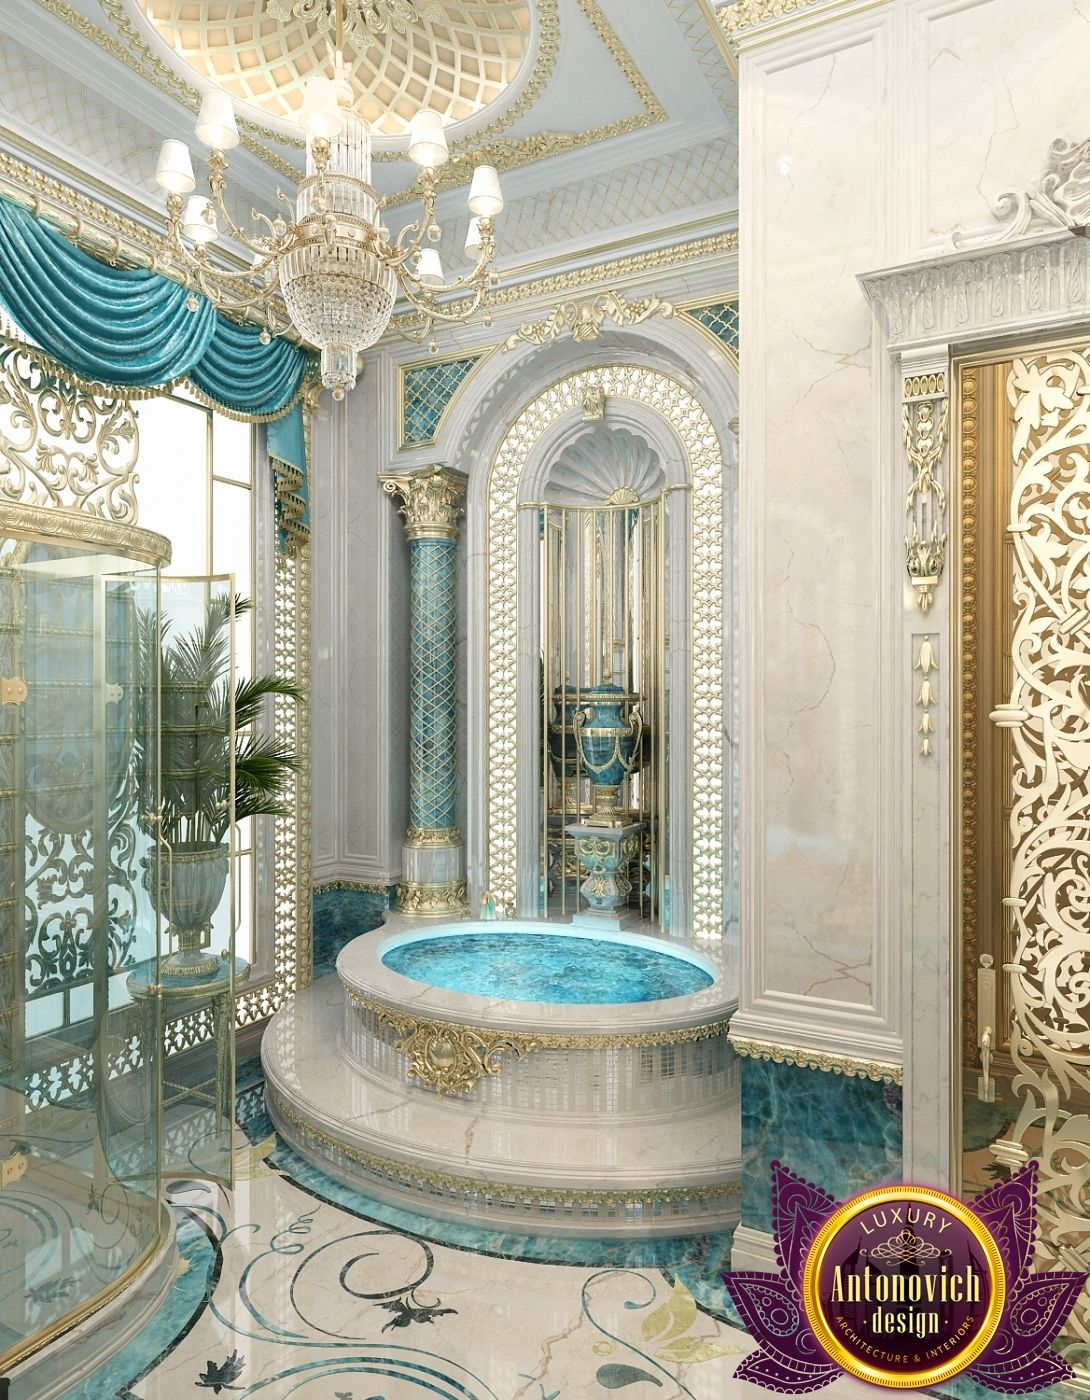 Bathroom design in dubai the best interior design for Bathroom interior design dubai